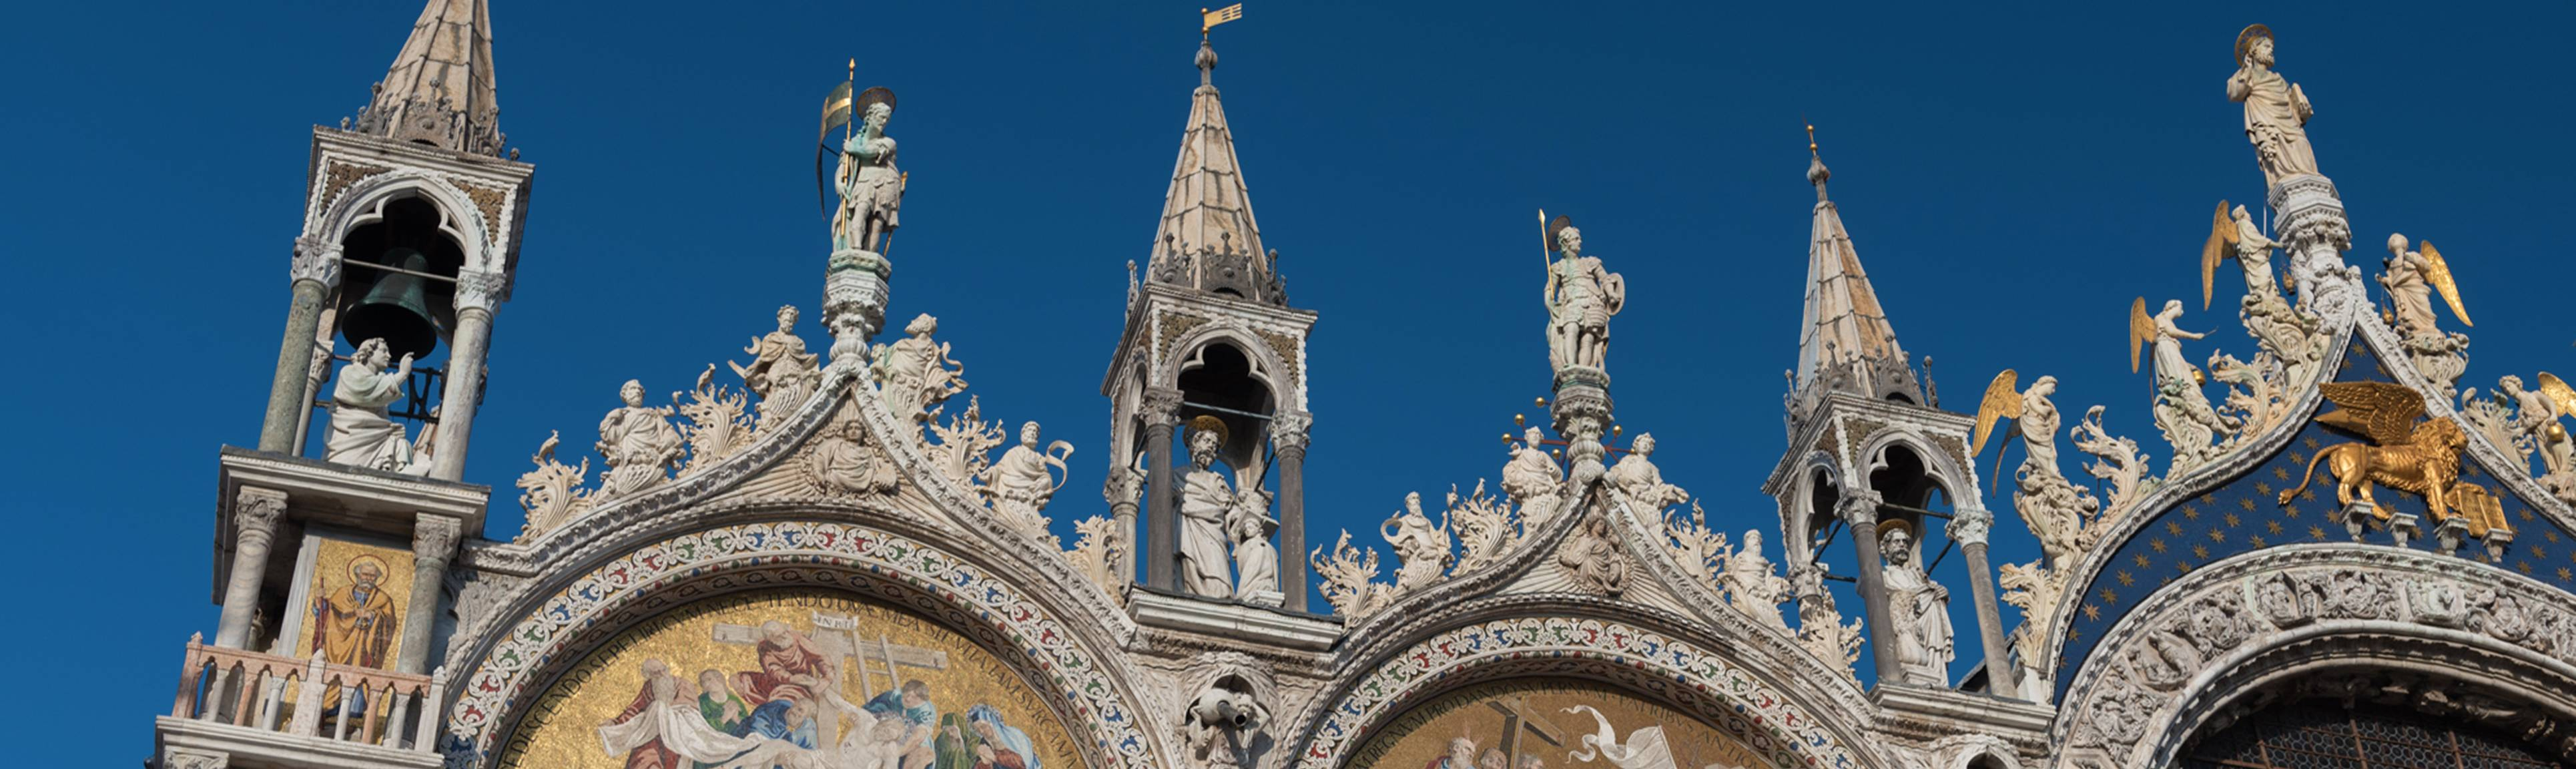 Looking up at the statues & paintings, Basilica San Marco in Venice